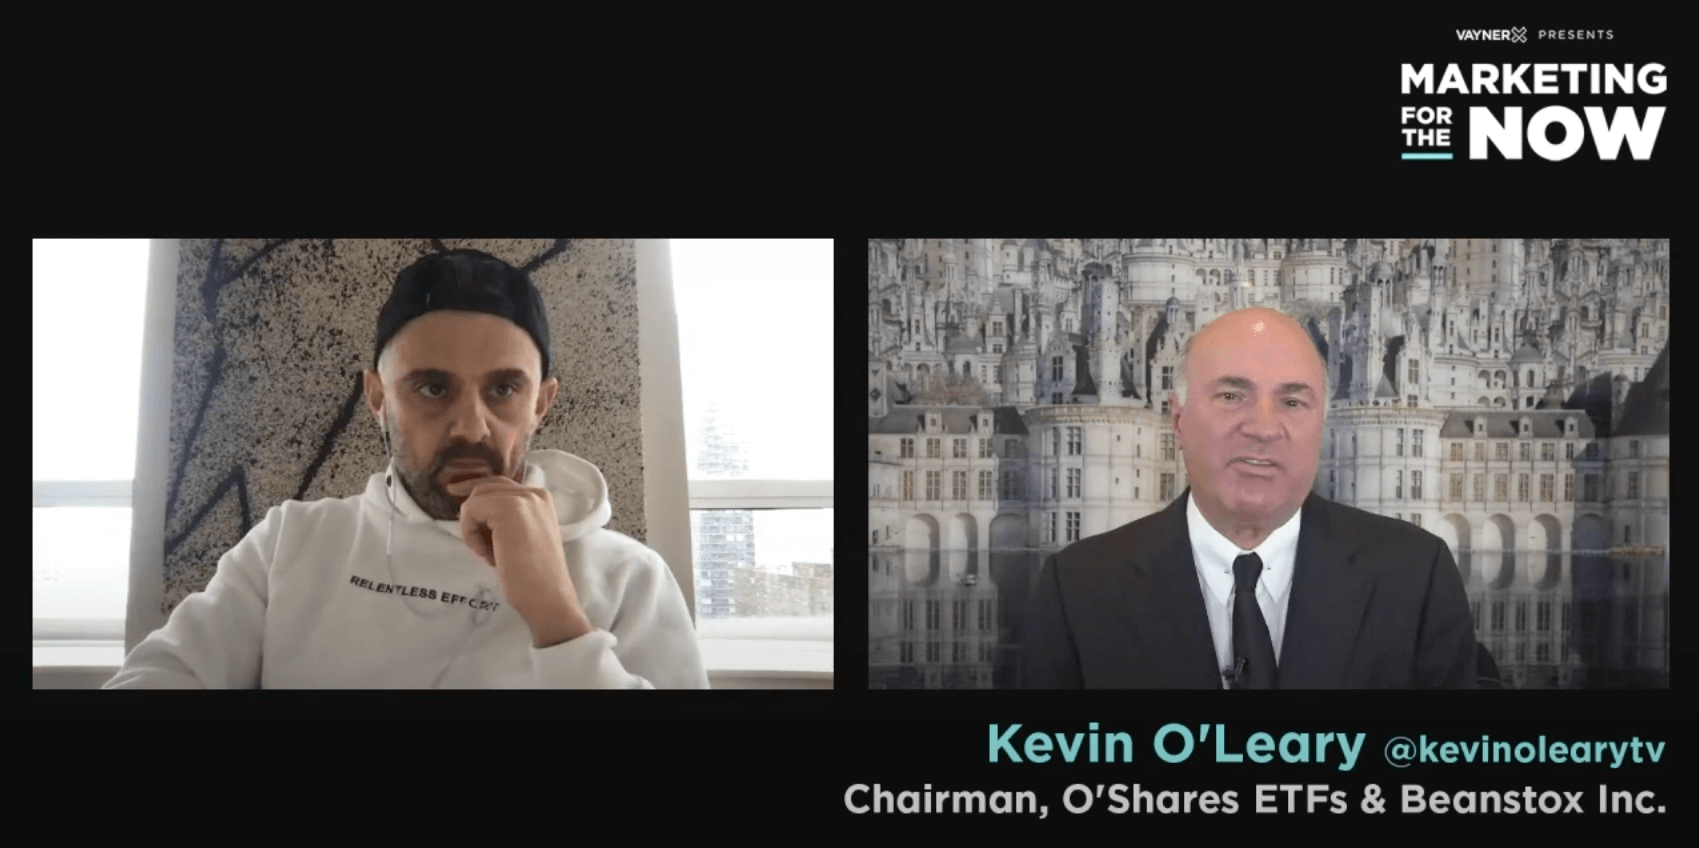 GaryVee with Kevin OLeary